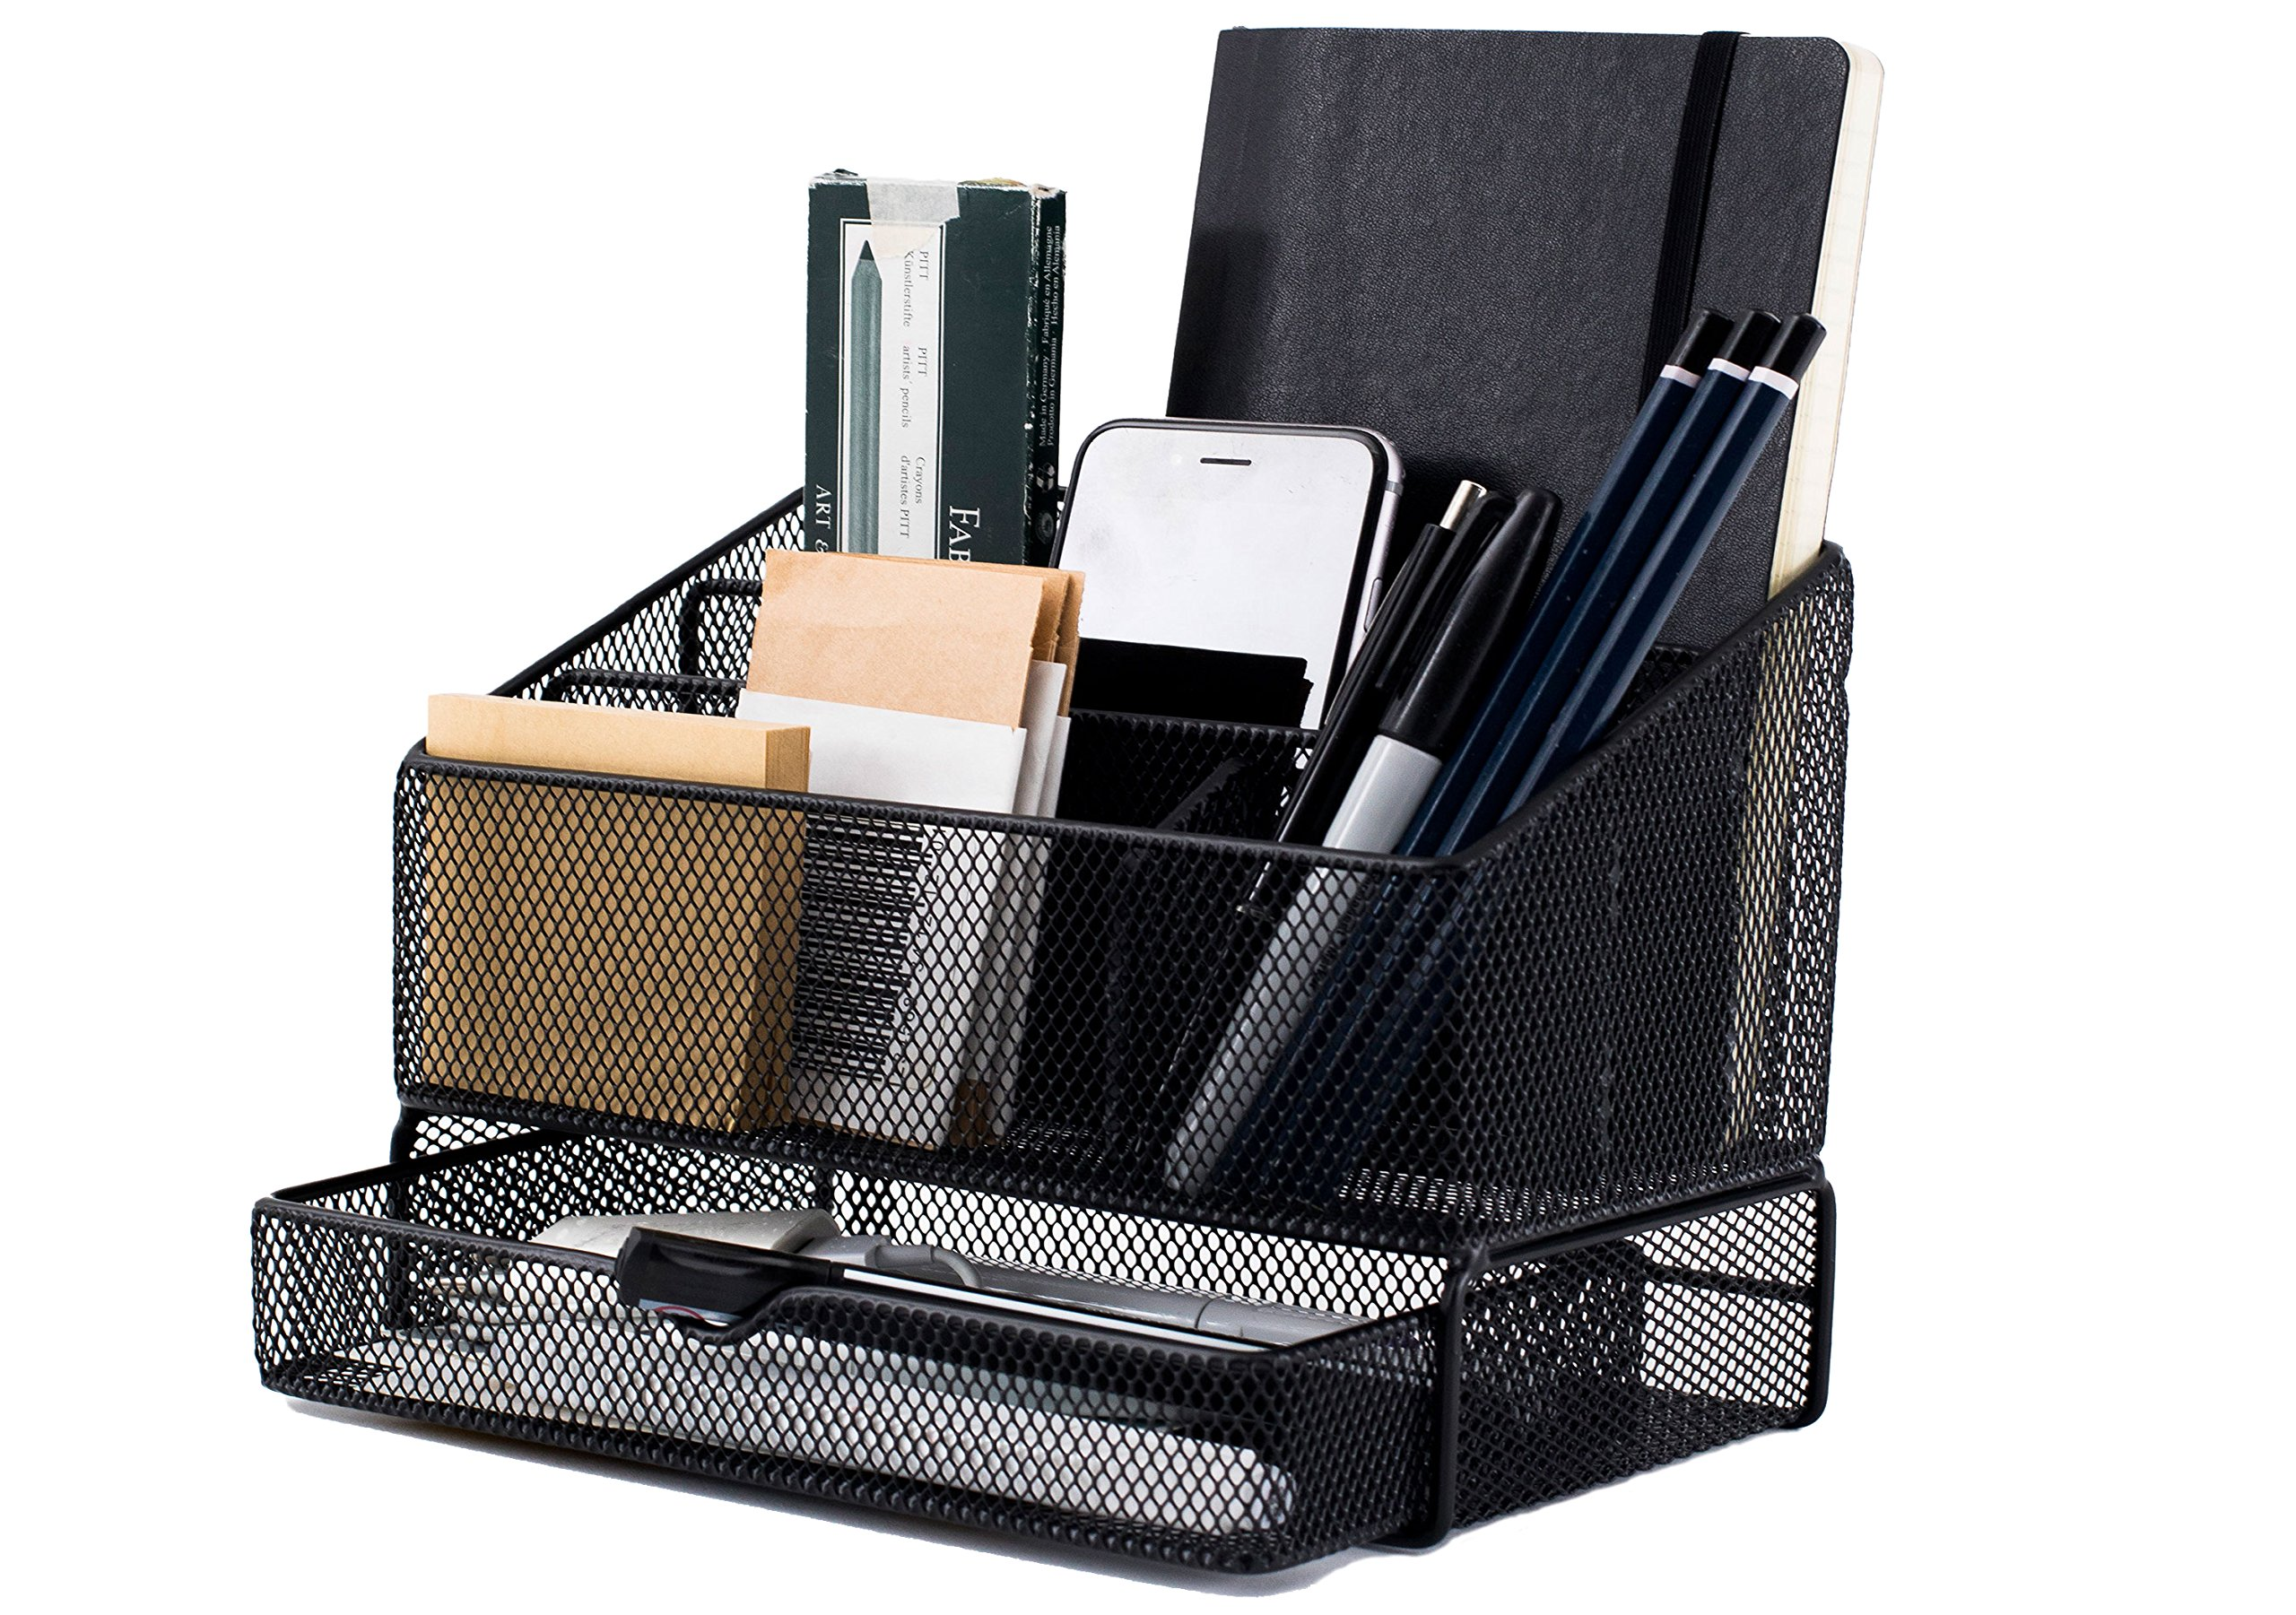 Equippt Desk Organizer Caddy with Draw, Letter Holder & Mail Organizer for Offices out of Black Steel Mesh